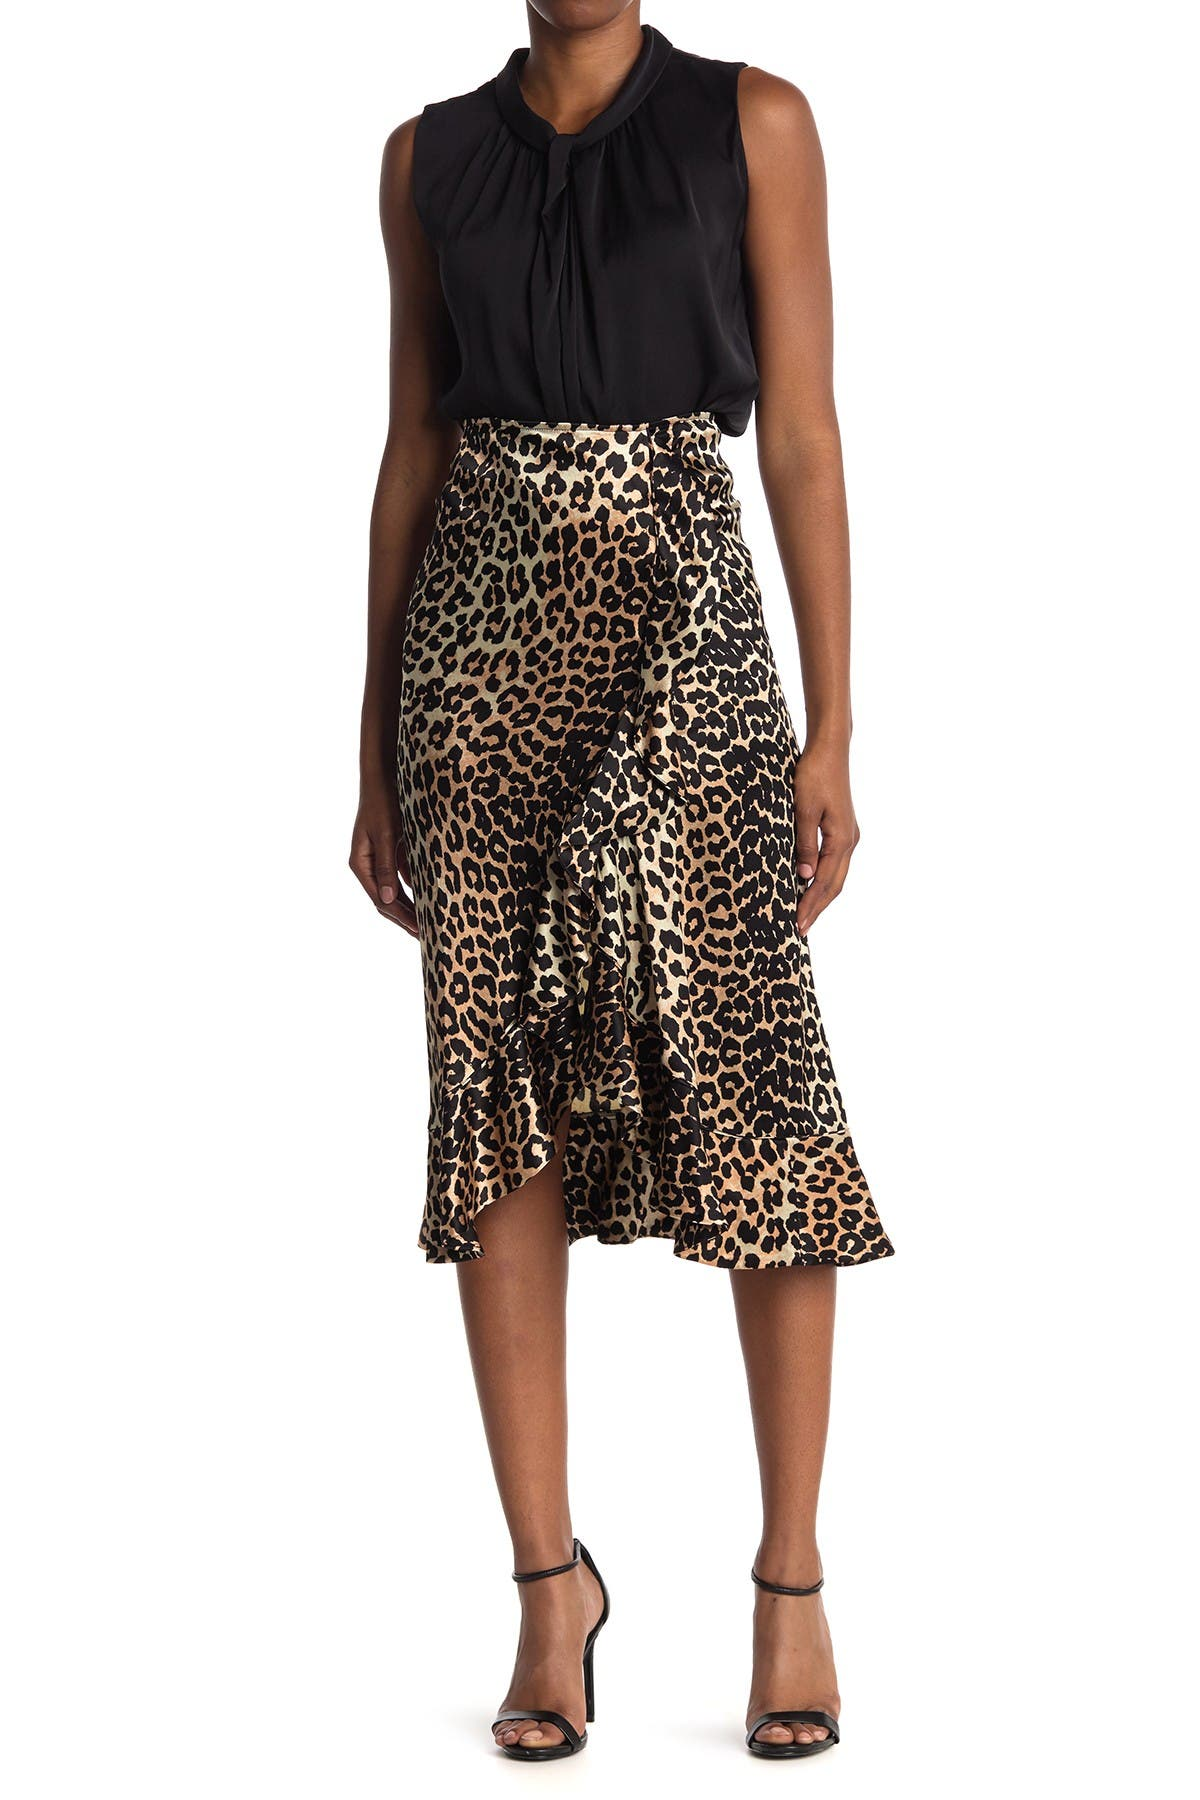 Image of GANNI Heavy Leopard Satin Skirt